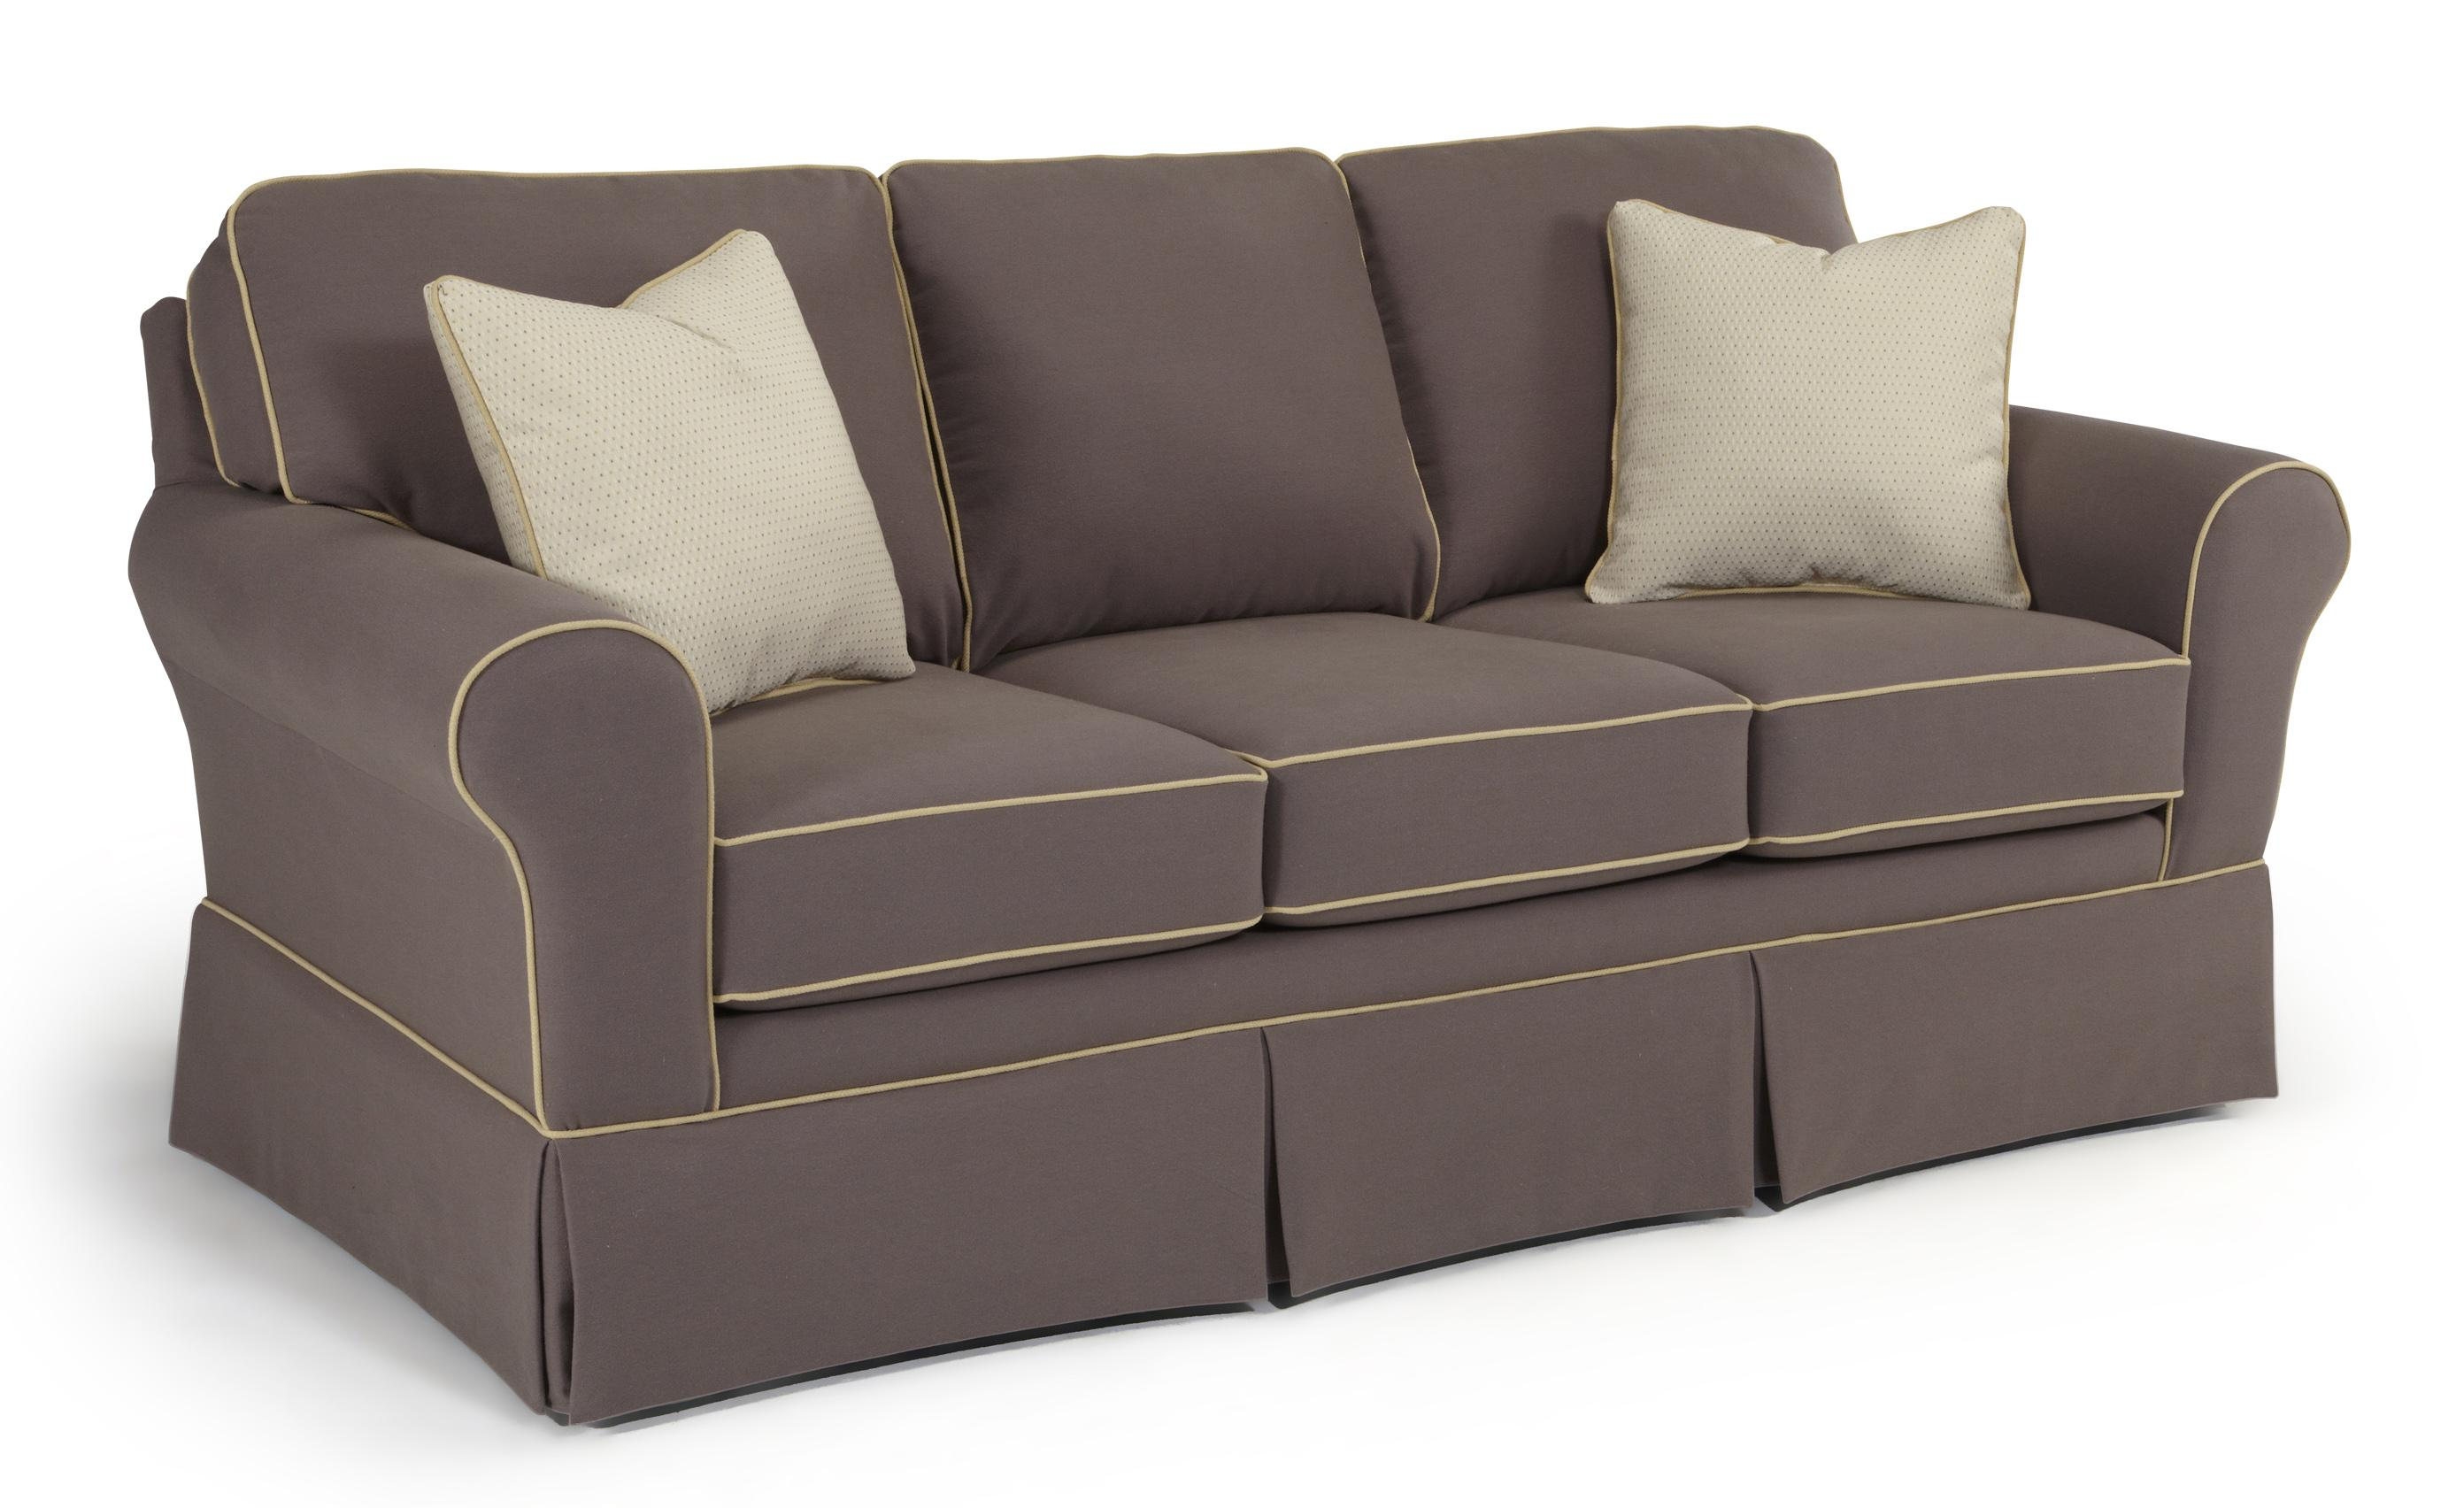 Customizable Traditional Sofa With Rolled Arms And Skirted